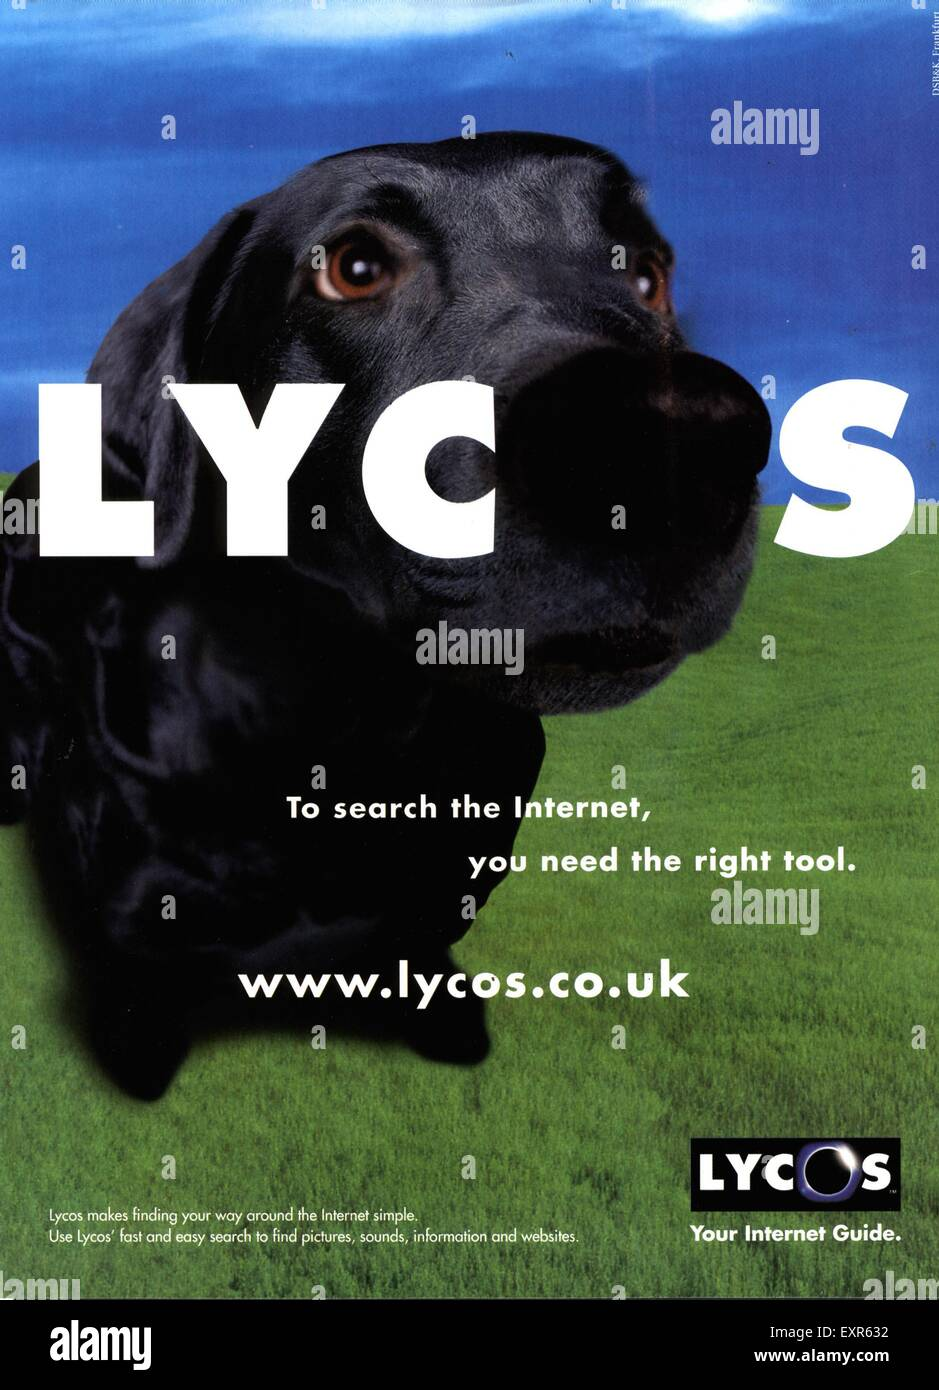 love@lycos dating